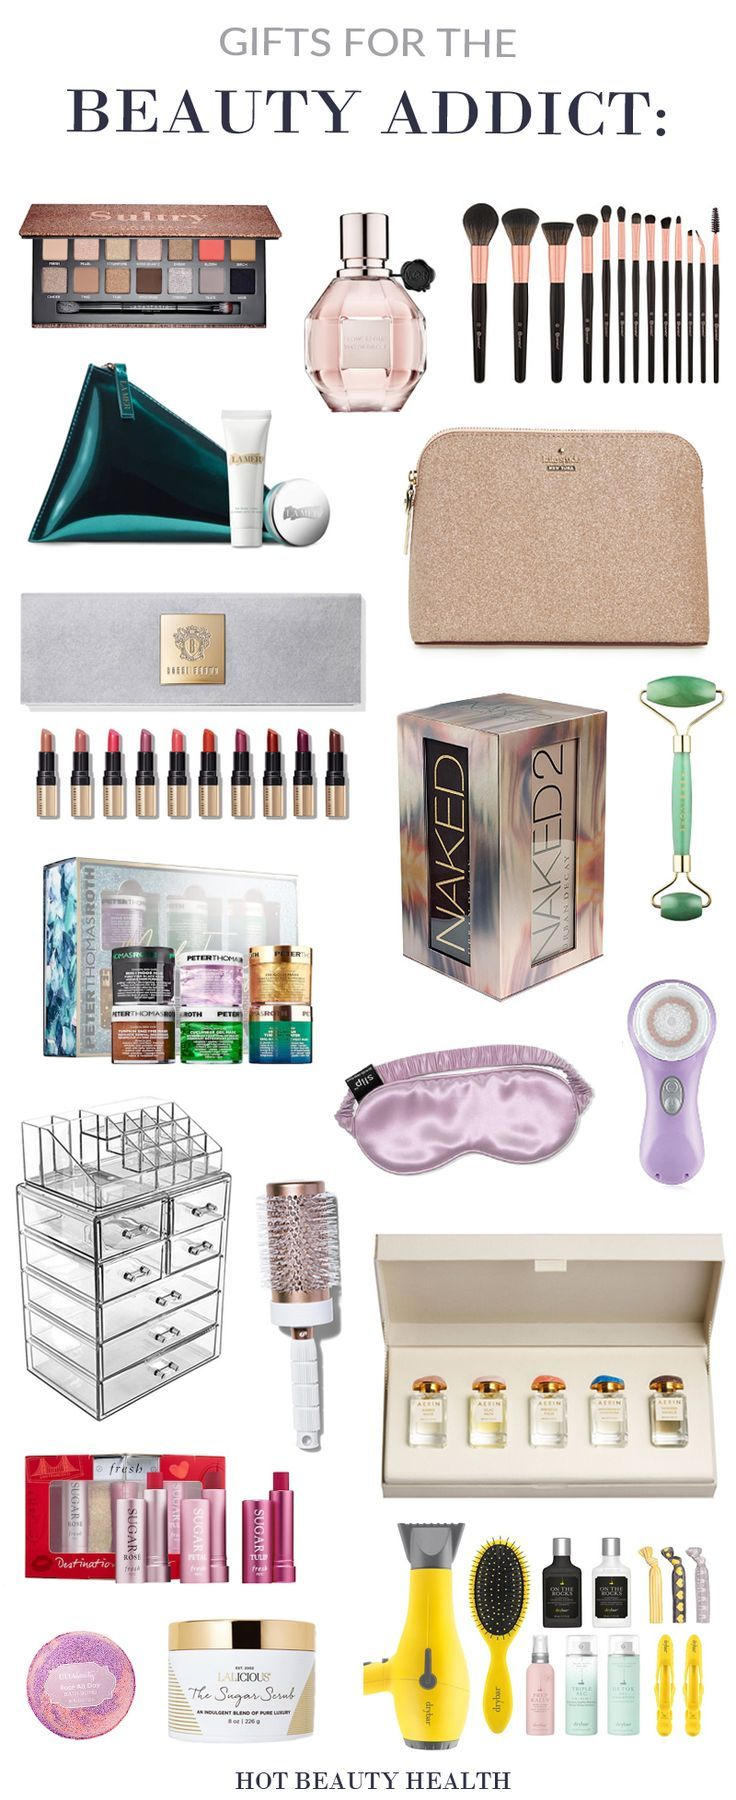 The Best Holiday Gifts For Her Beauty And Makeup Lover This Christmas Great Gift Stocking Stuffer Ideas Mom Wife Sister Aunts Daughter